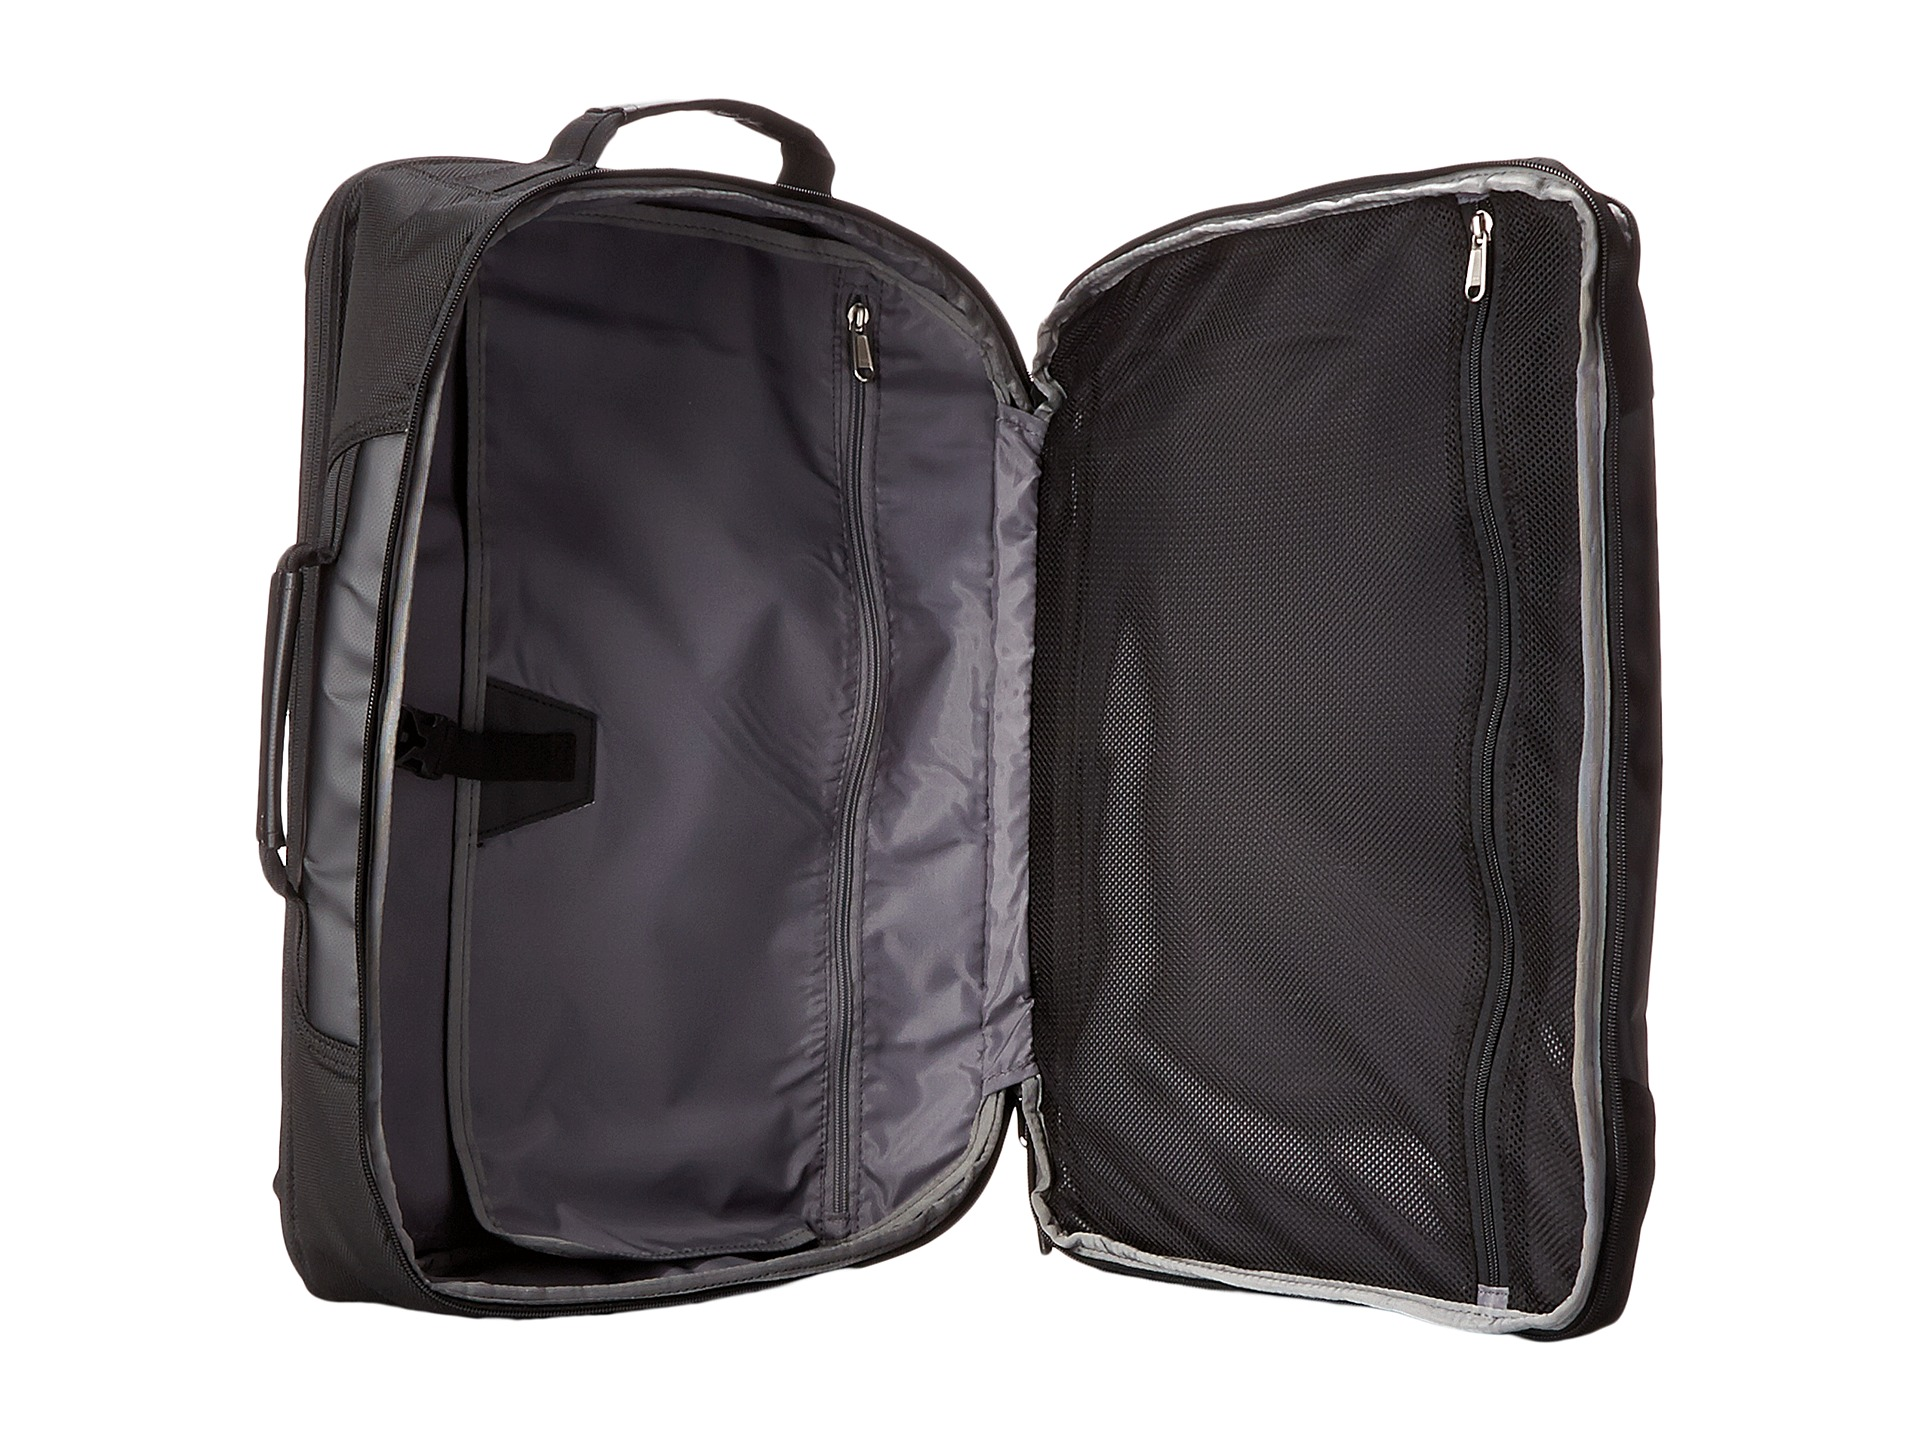 north face auditing case Online shopping for electronics from a great selection of sleeves, folio cases, shoulder bags, backpacks, laptop computer bags and cases & more at everyday low prices.